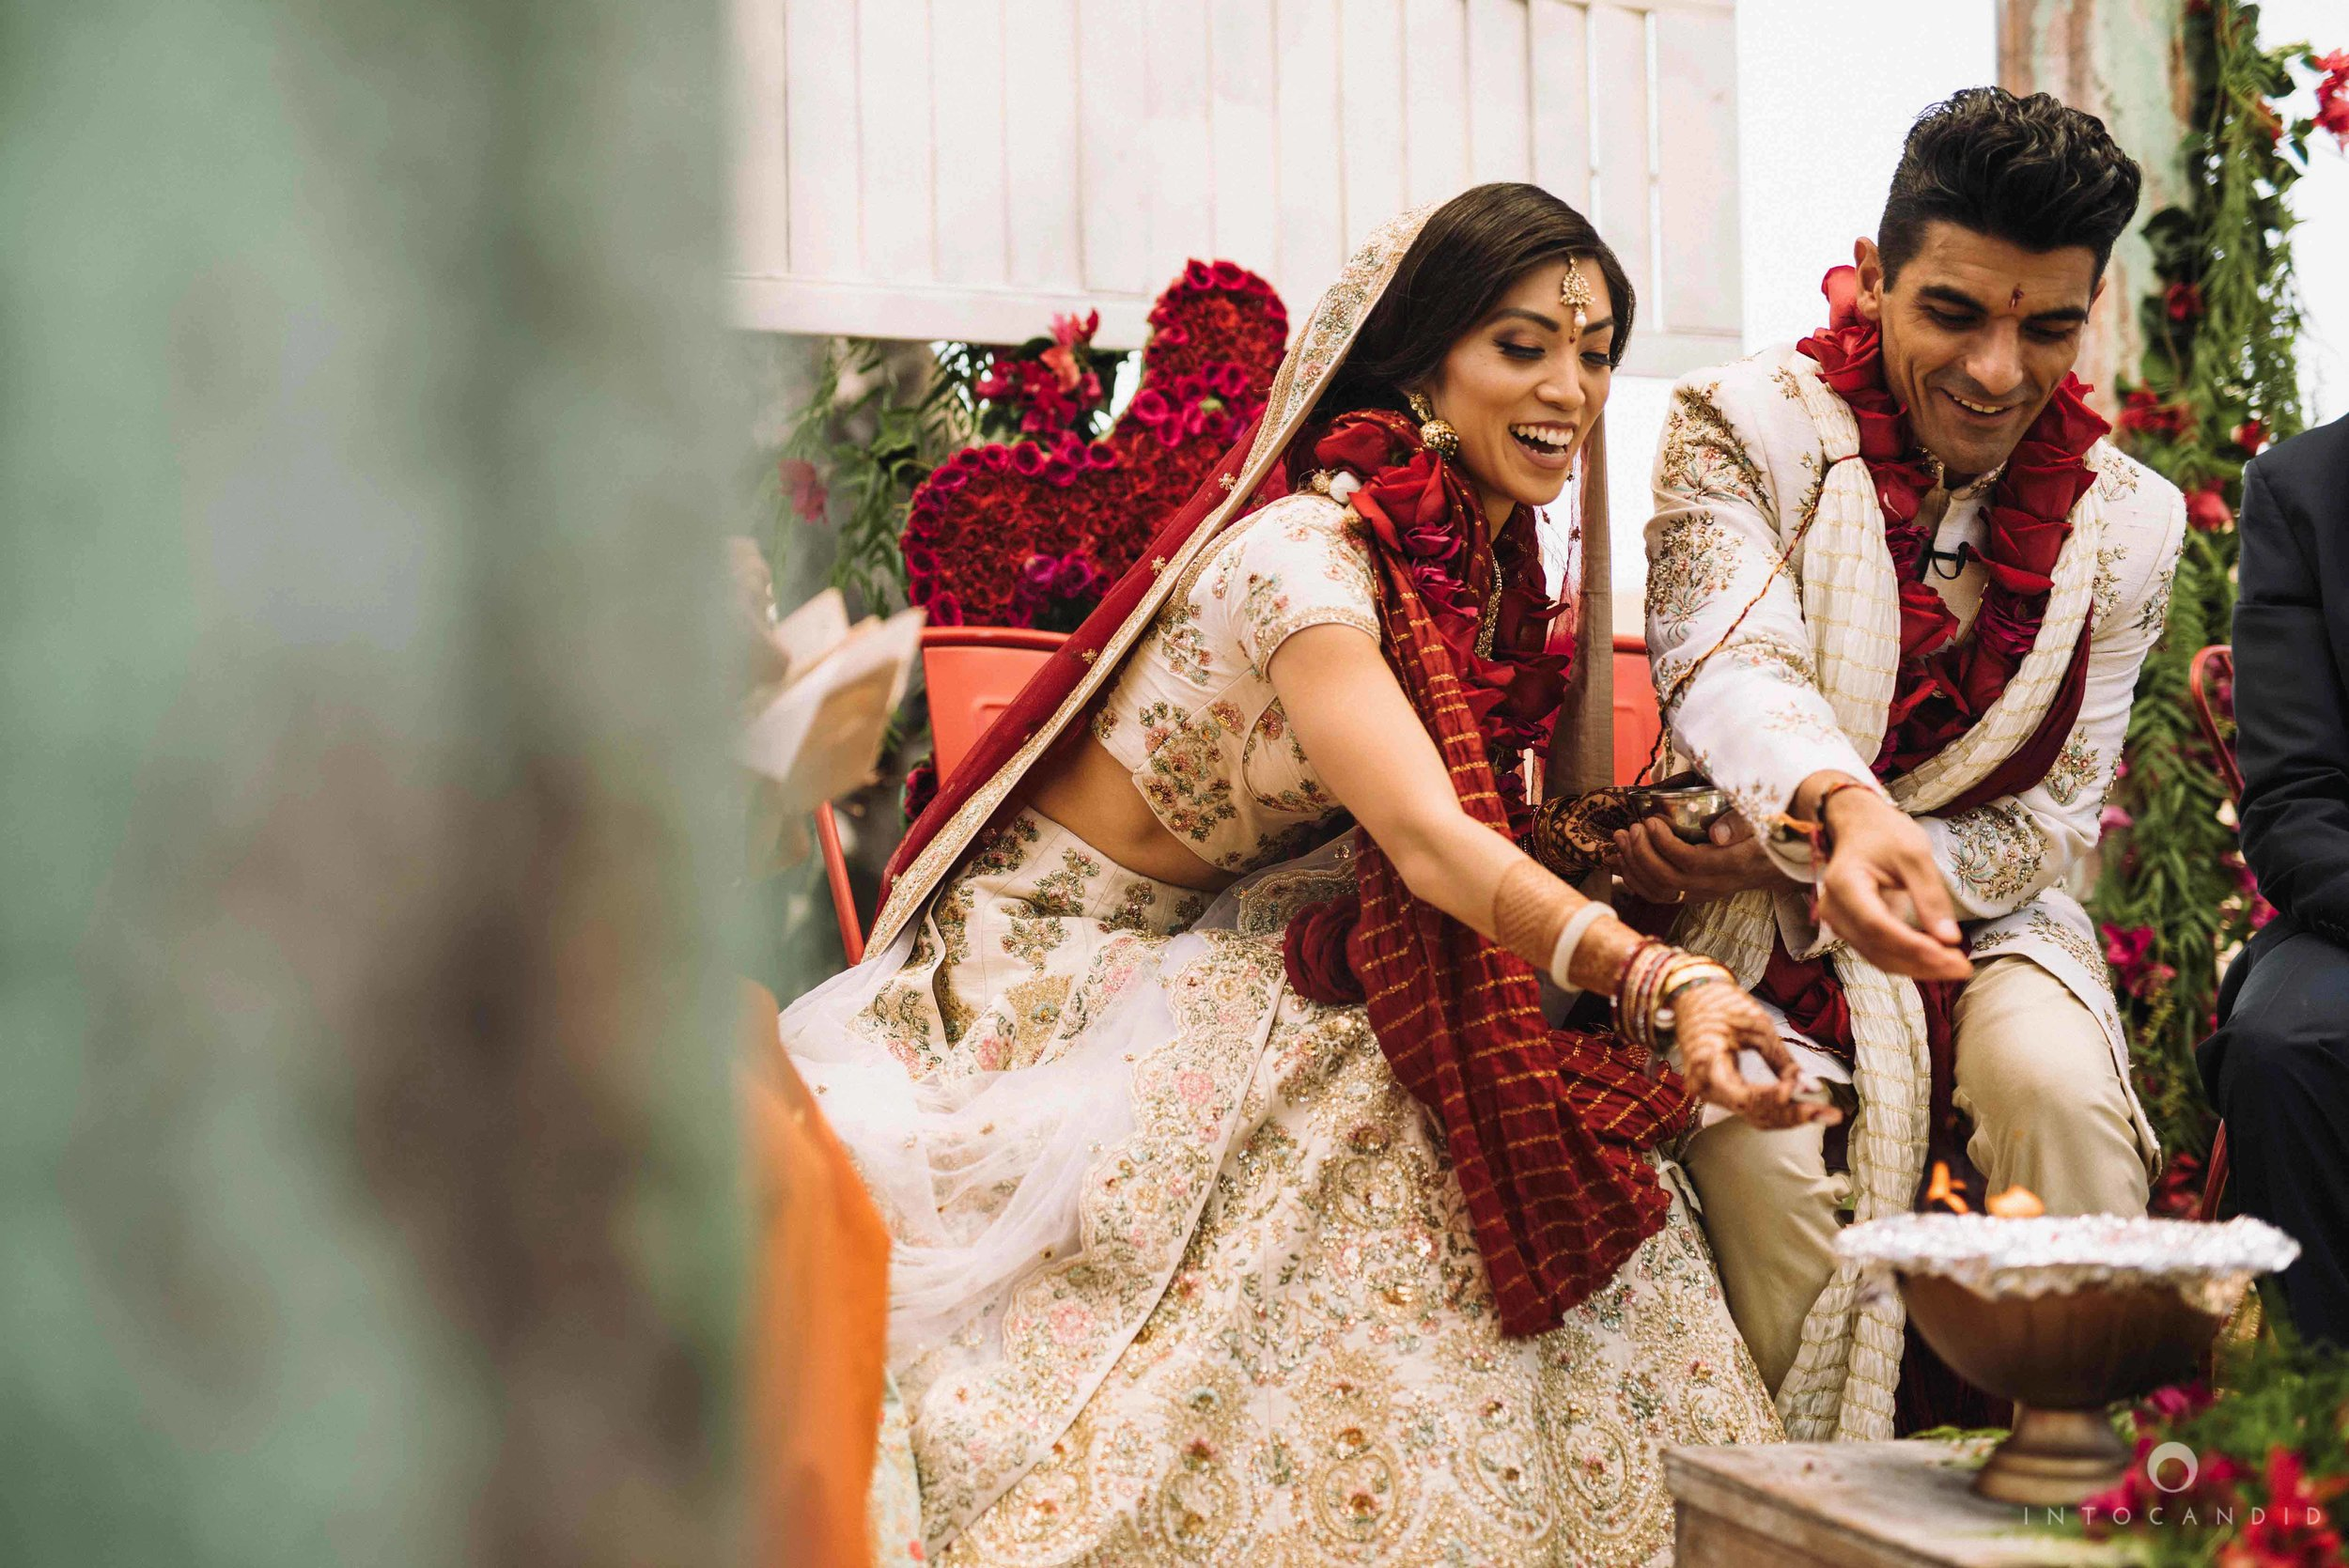 LosAngeles_Indian_Wedding_Photographer_AS_101.jpg